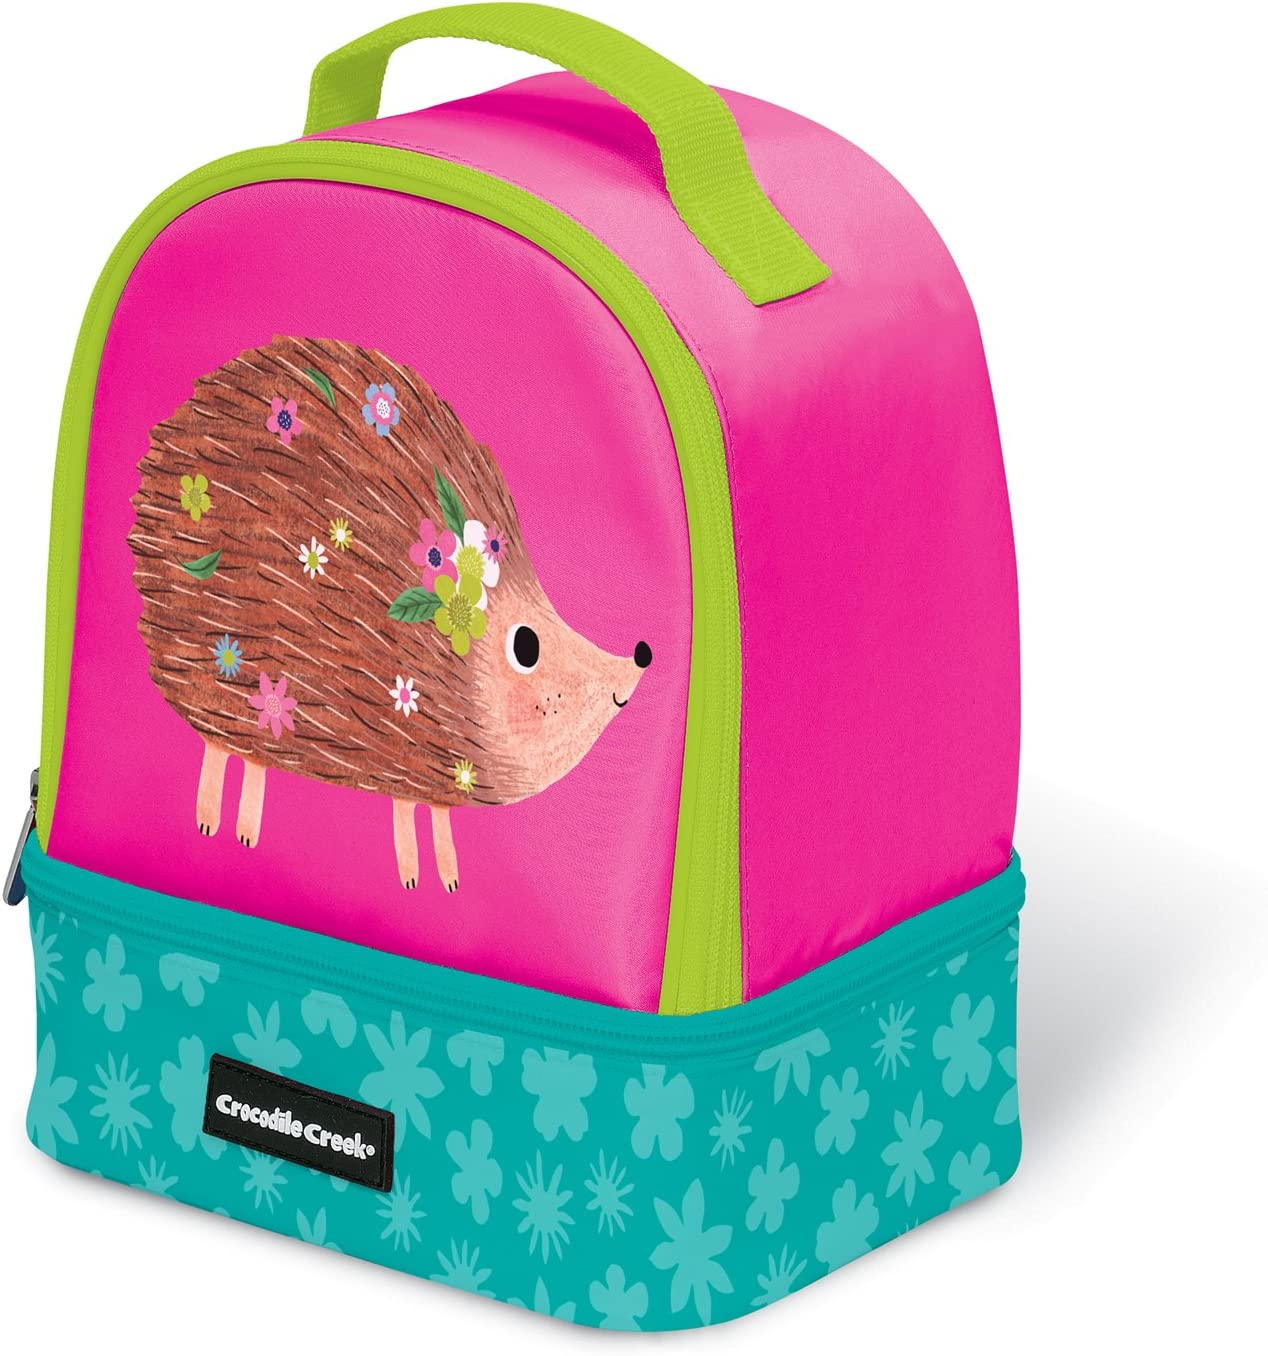 Crocodile Creek Eco Pink Hedgehog Two Compartment Kids' Lunchbox Insulated Lunch Box with Handle, 9.5&Quot